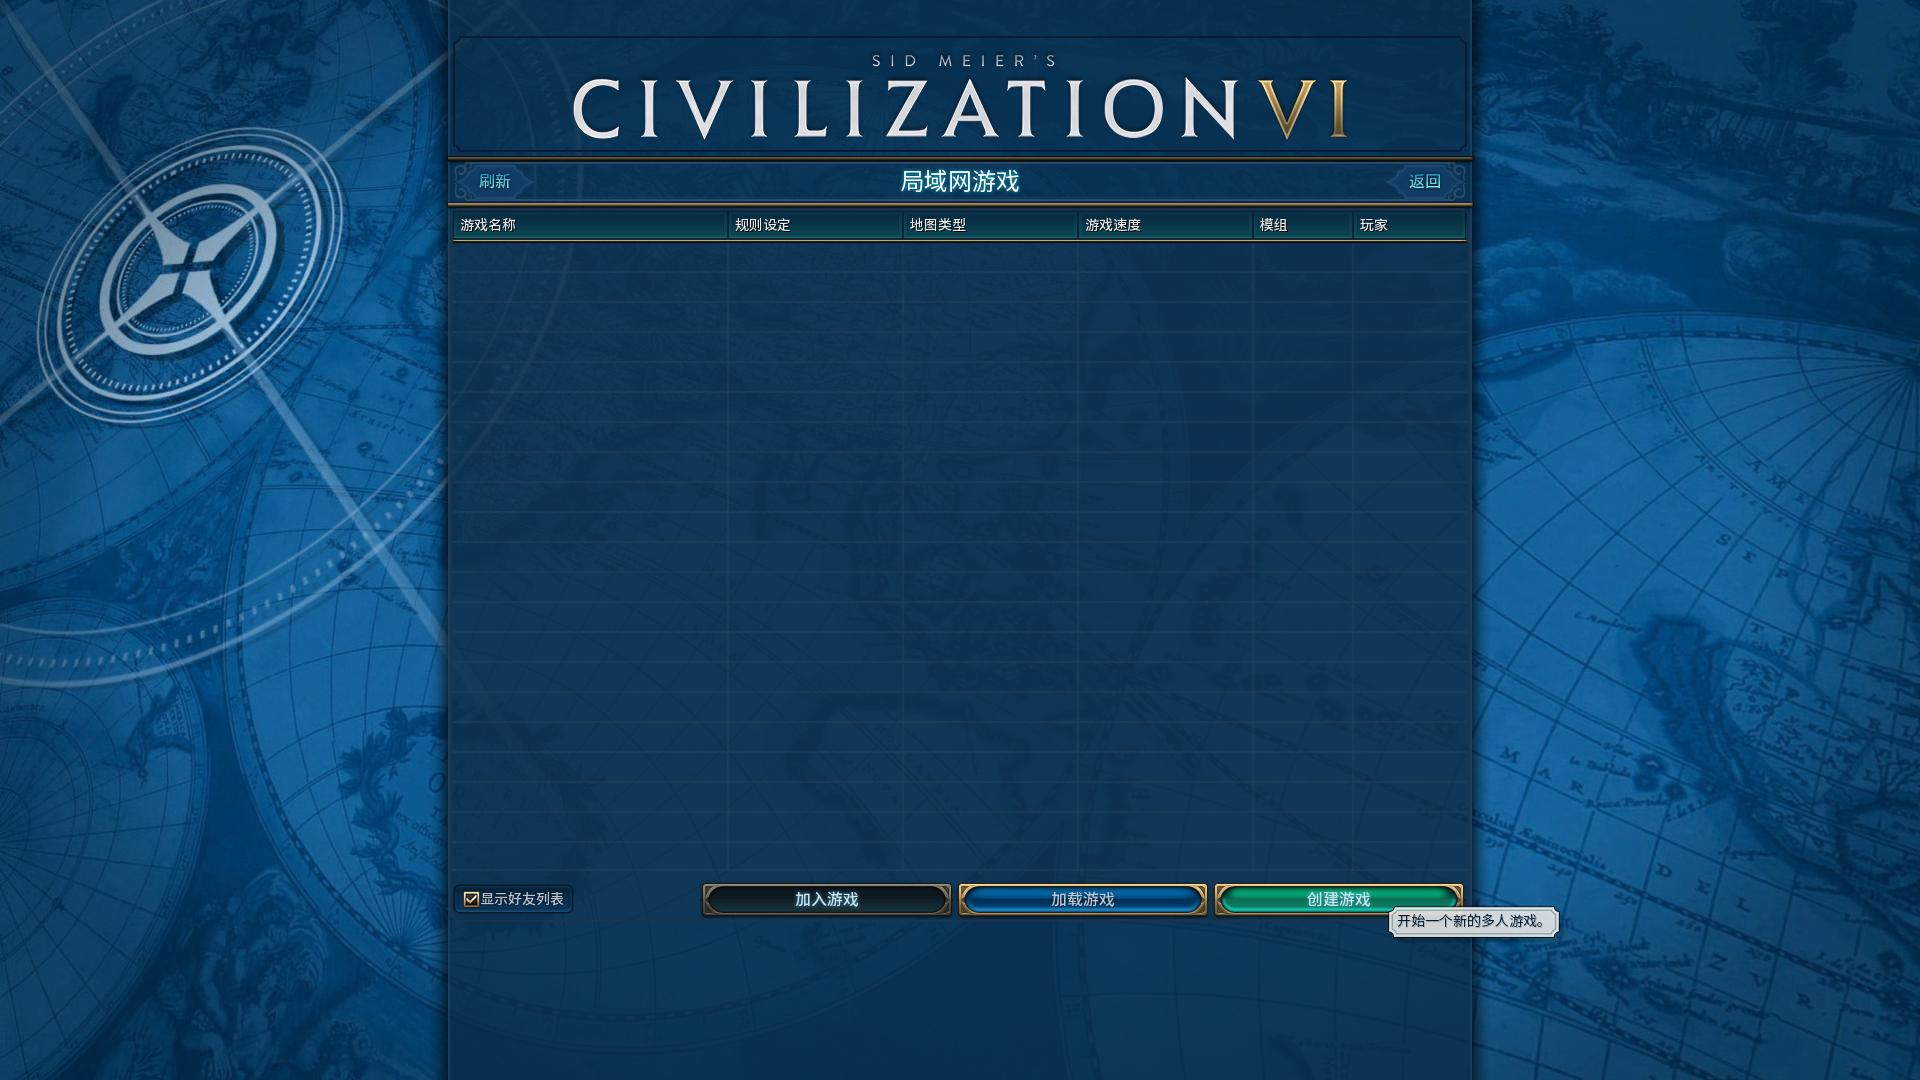 CivilizationVI 2016-10-21 15-06-47-39.jpg